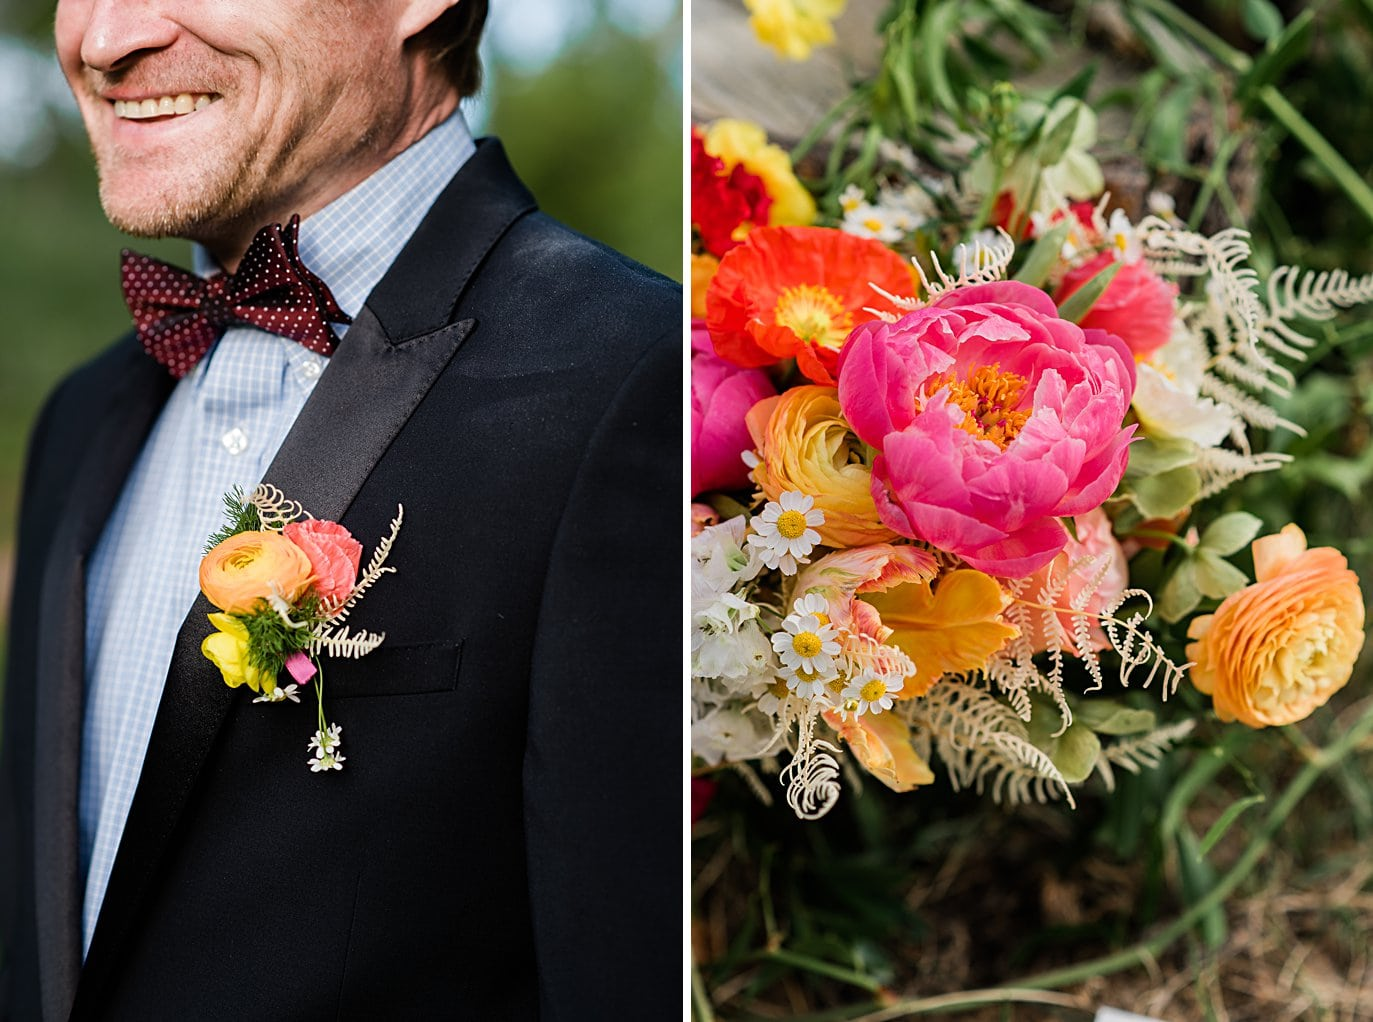 colorful and vibrant wedding bouquet and boutonniere at private Golden elopement by Boulder elopement photographer Jennie Crate